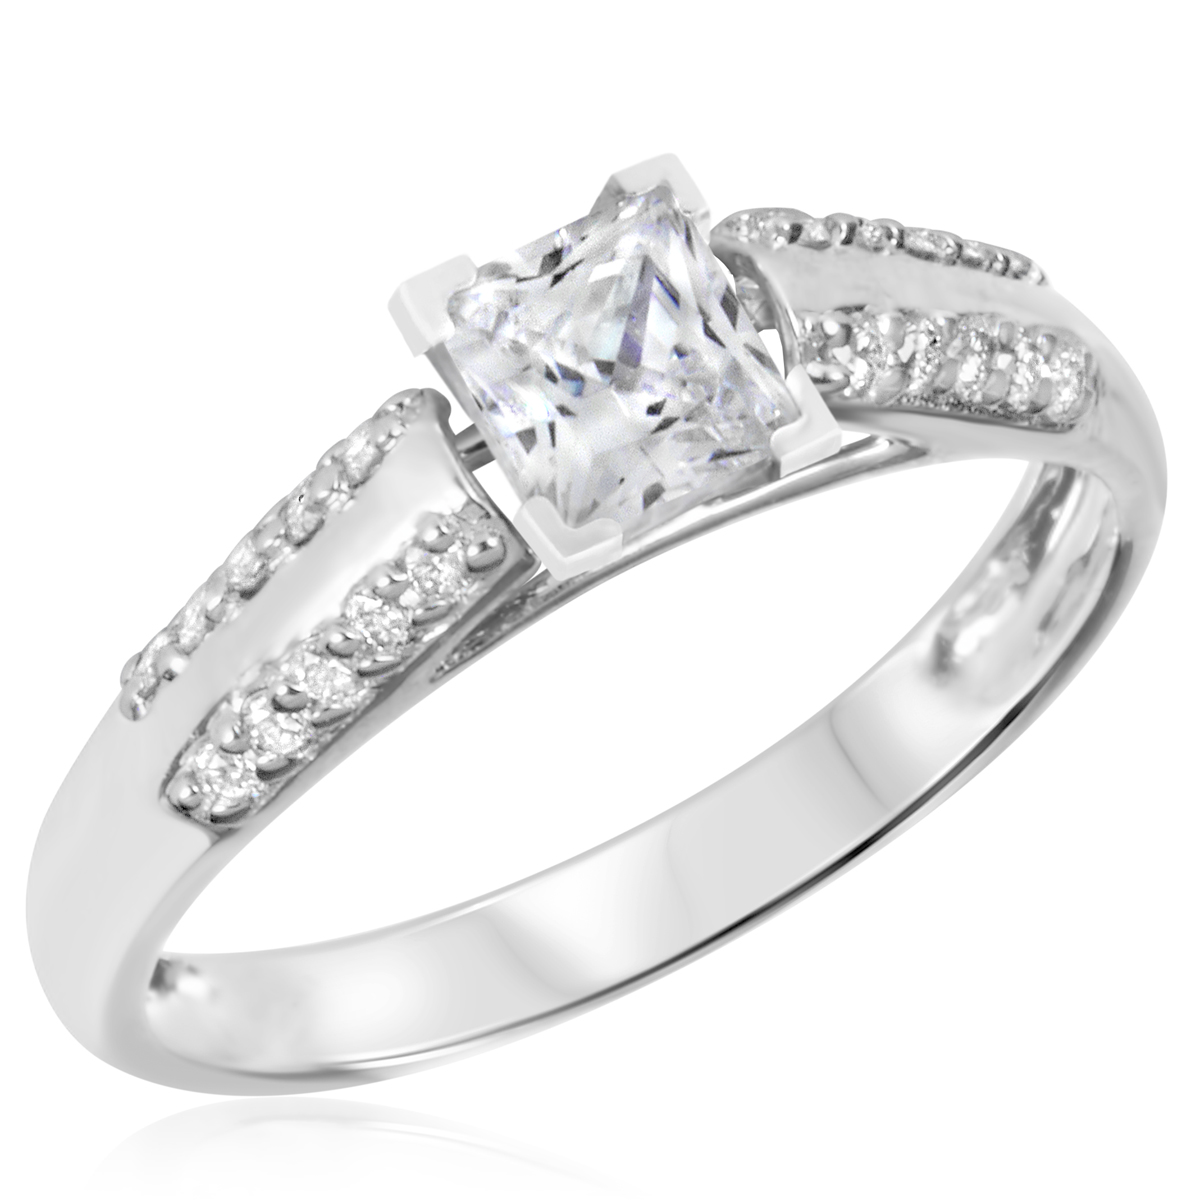 1 CT. T.W. Diamond Ladies Engagement Ring 14K White Gold